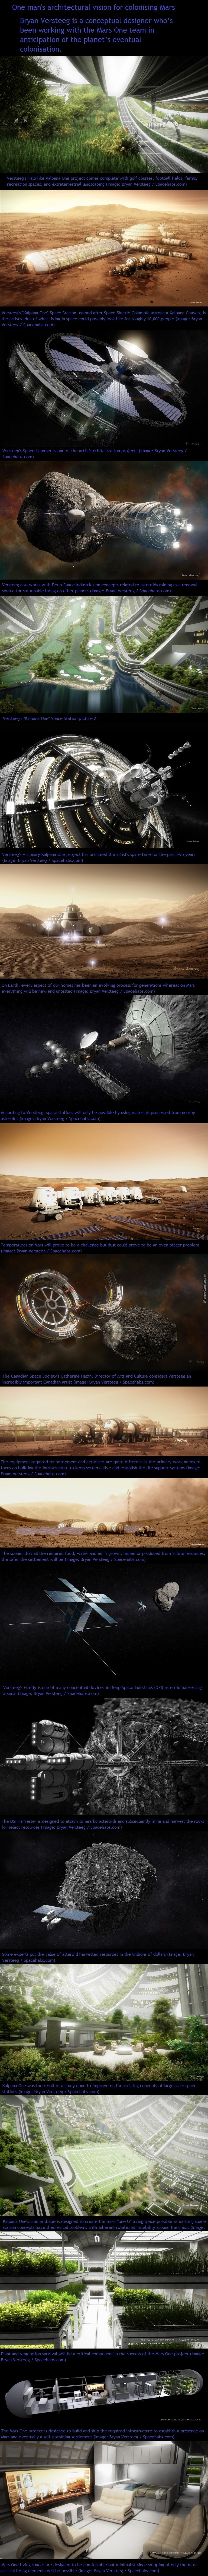 Mars One Conceptual Art